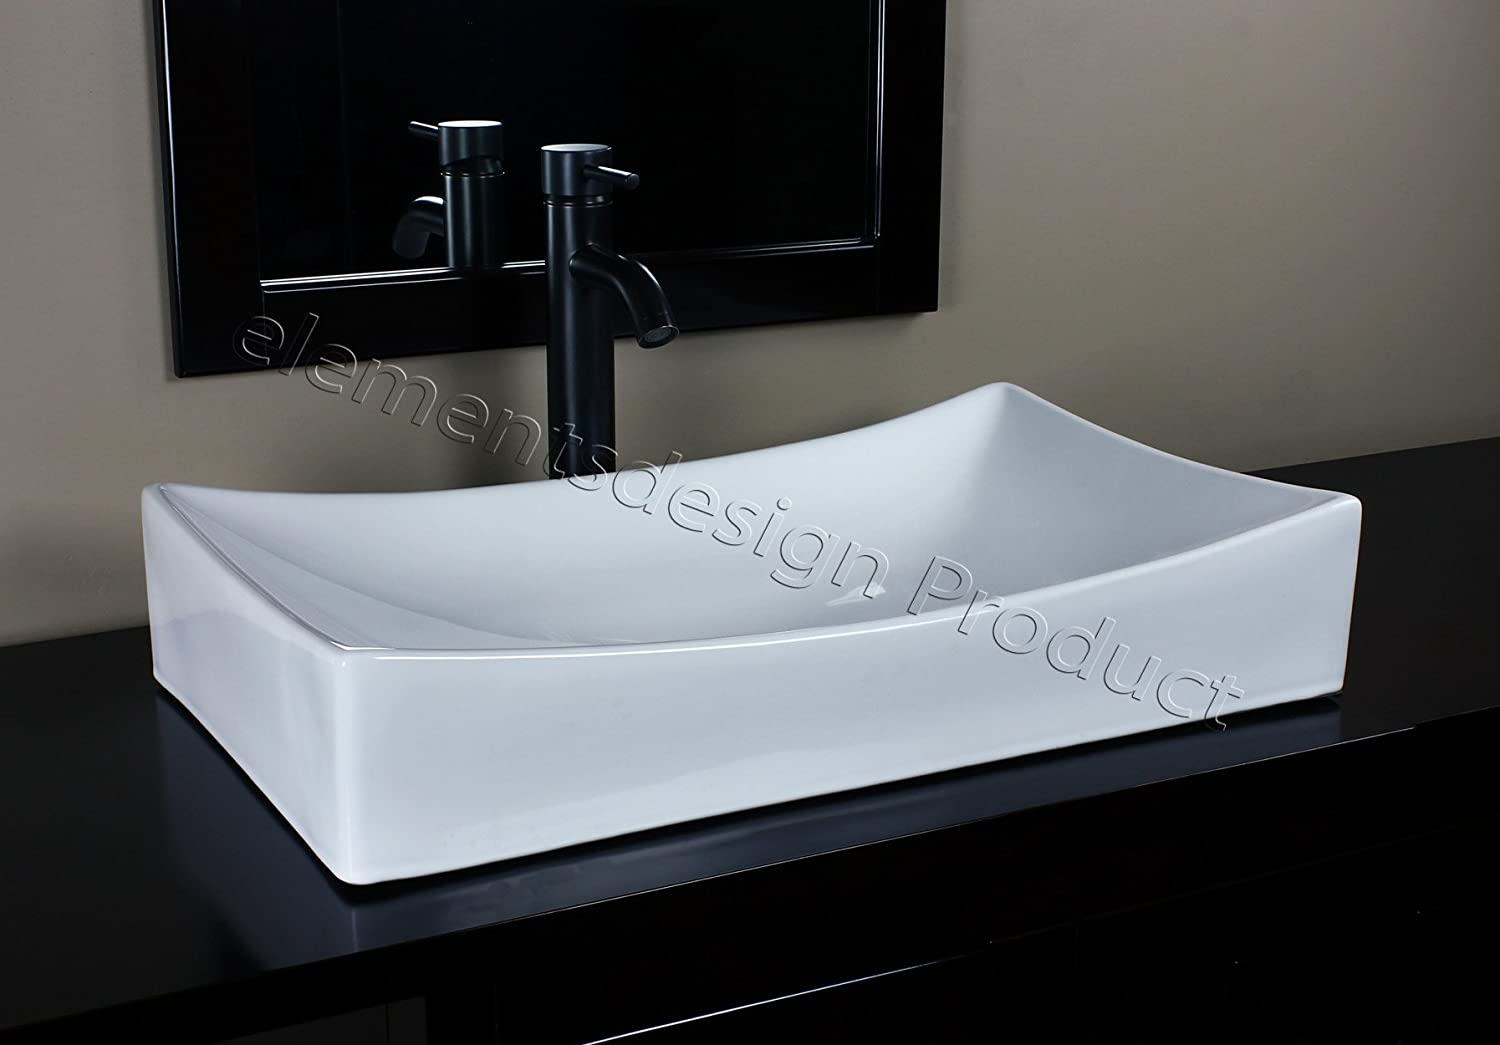 Bathroom White Ceramic Porcelain Vessel Sink 7235E3 Oil Bronze faucet Drain